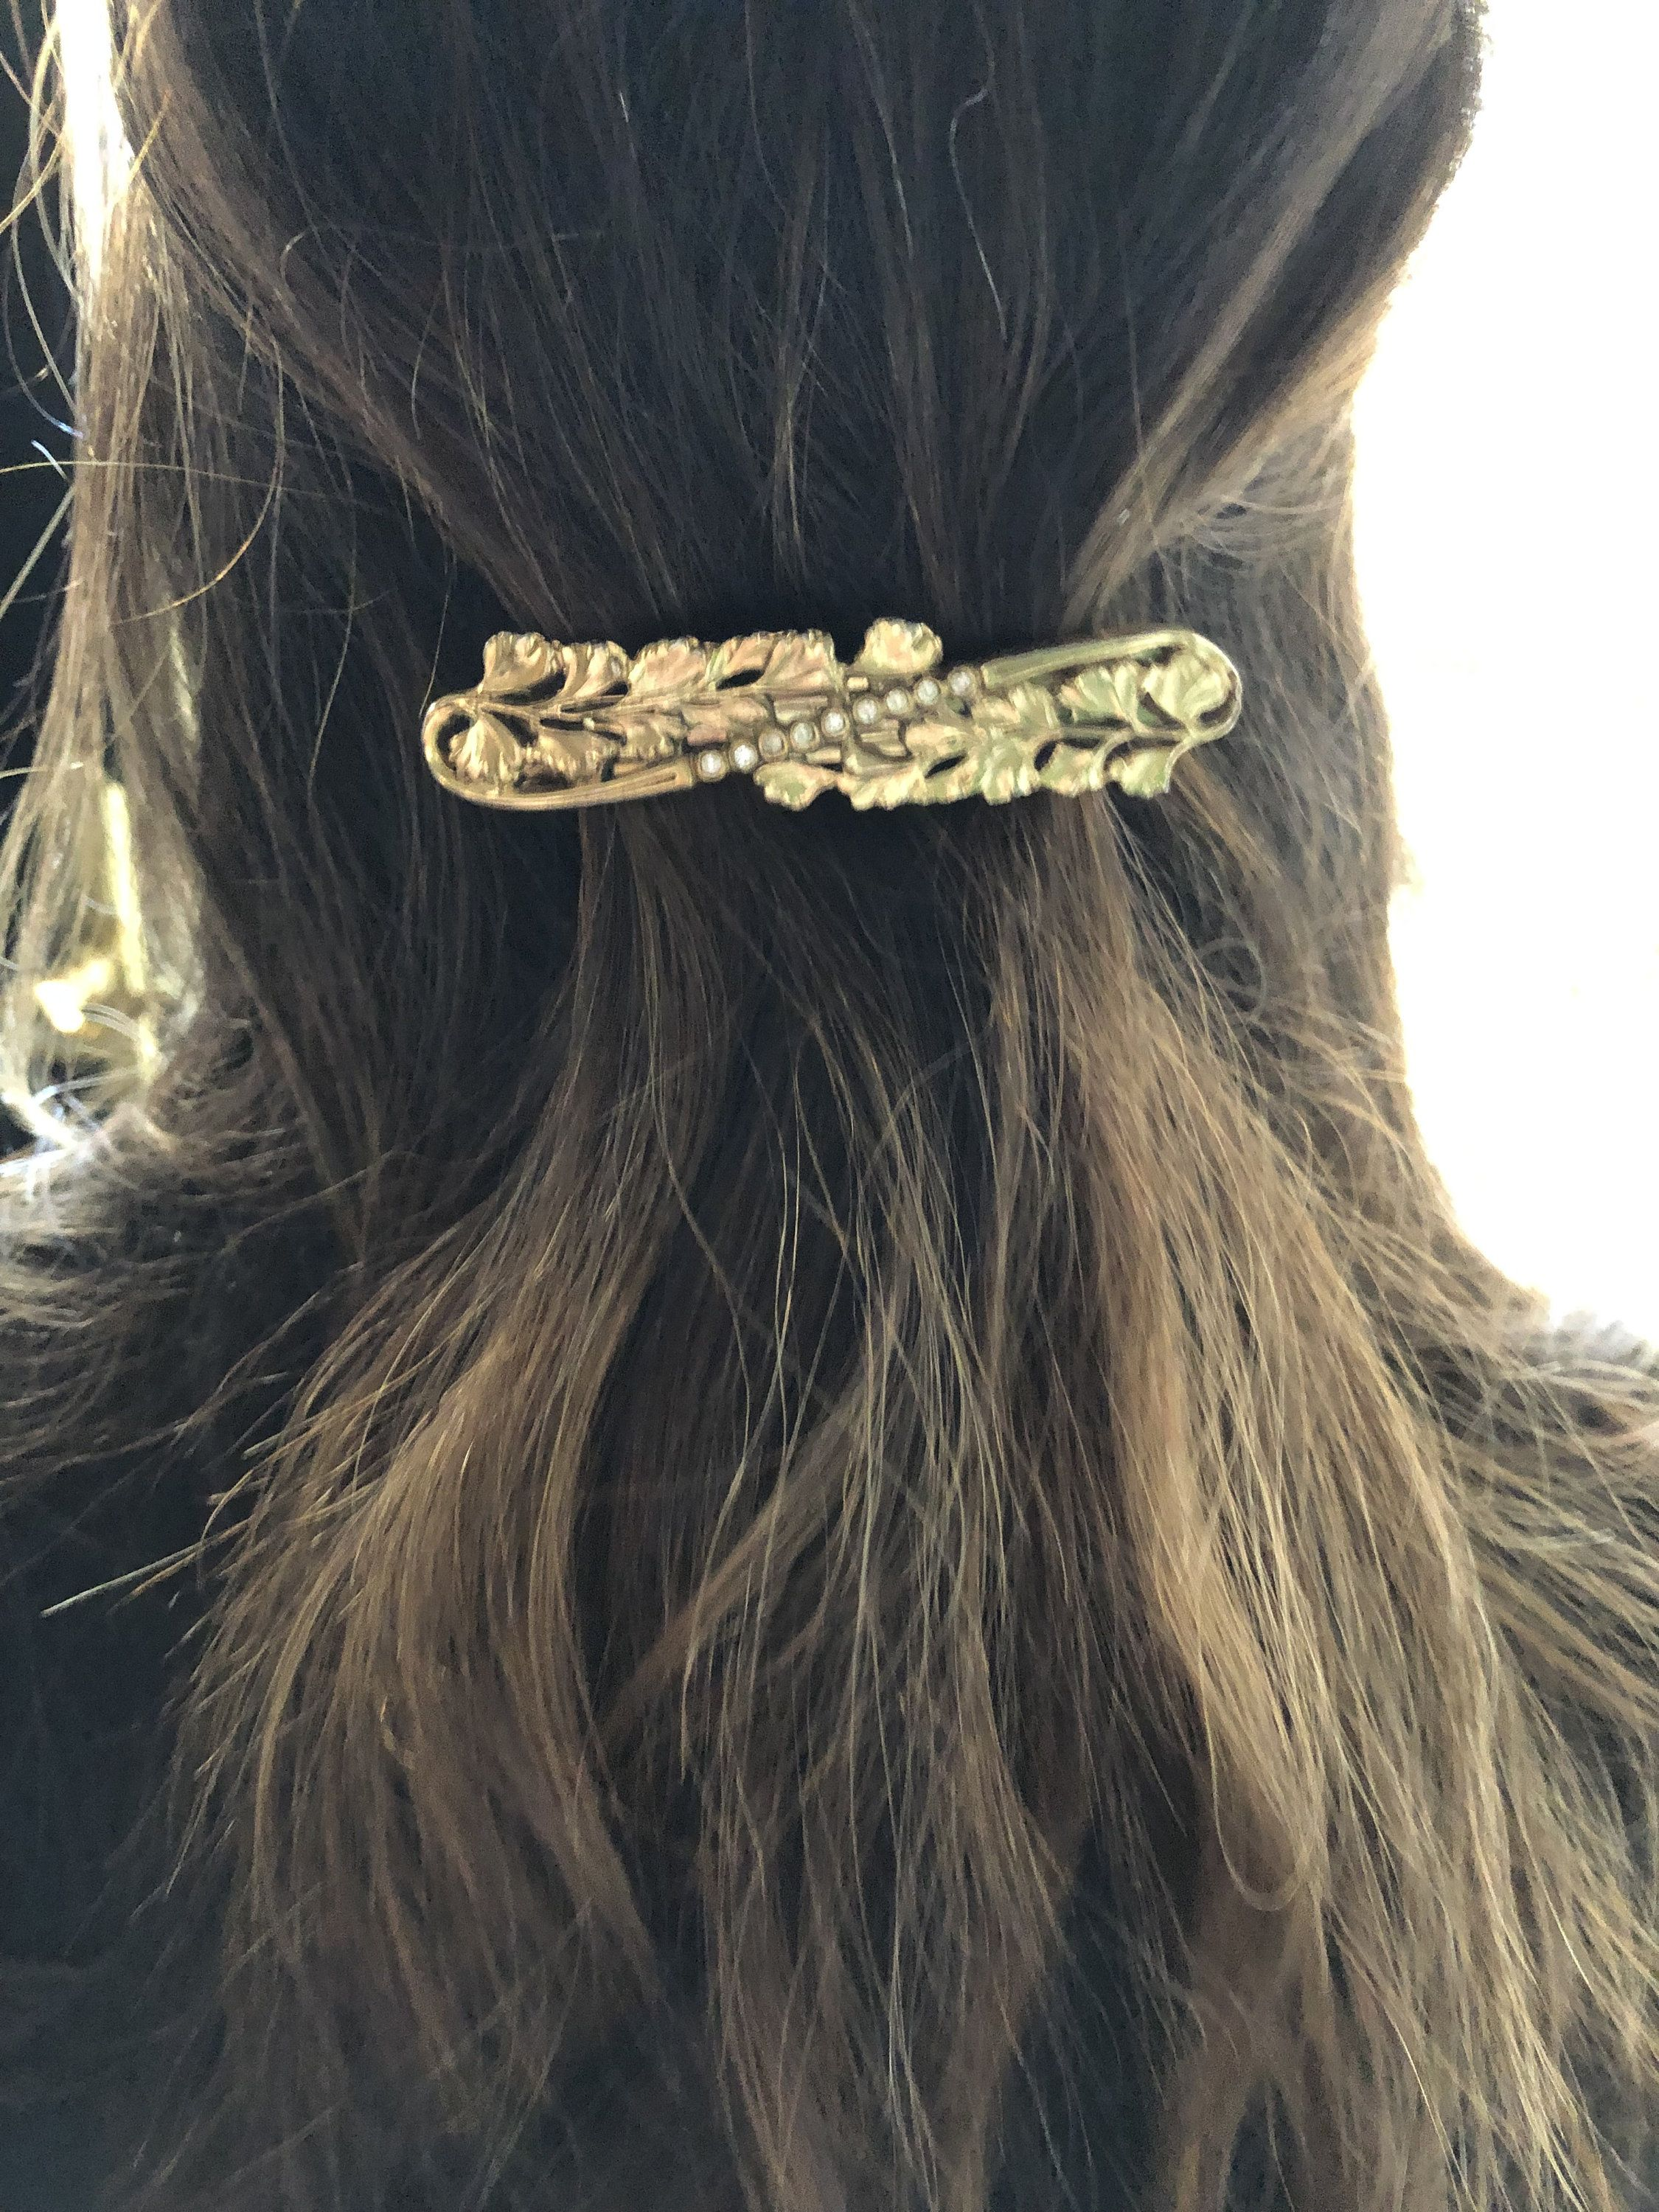 Vintage Barrette Brown Braided Barrette